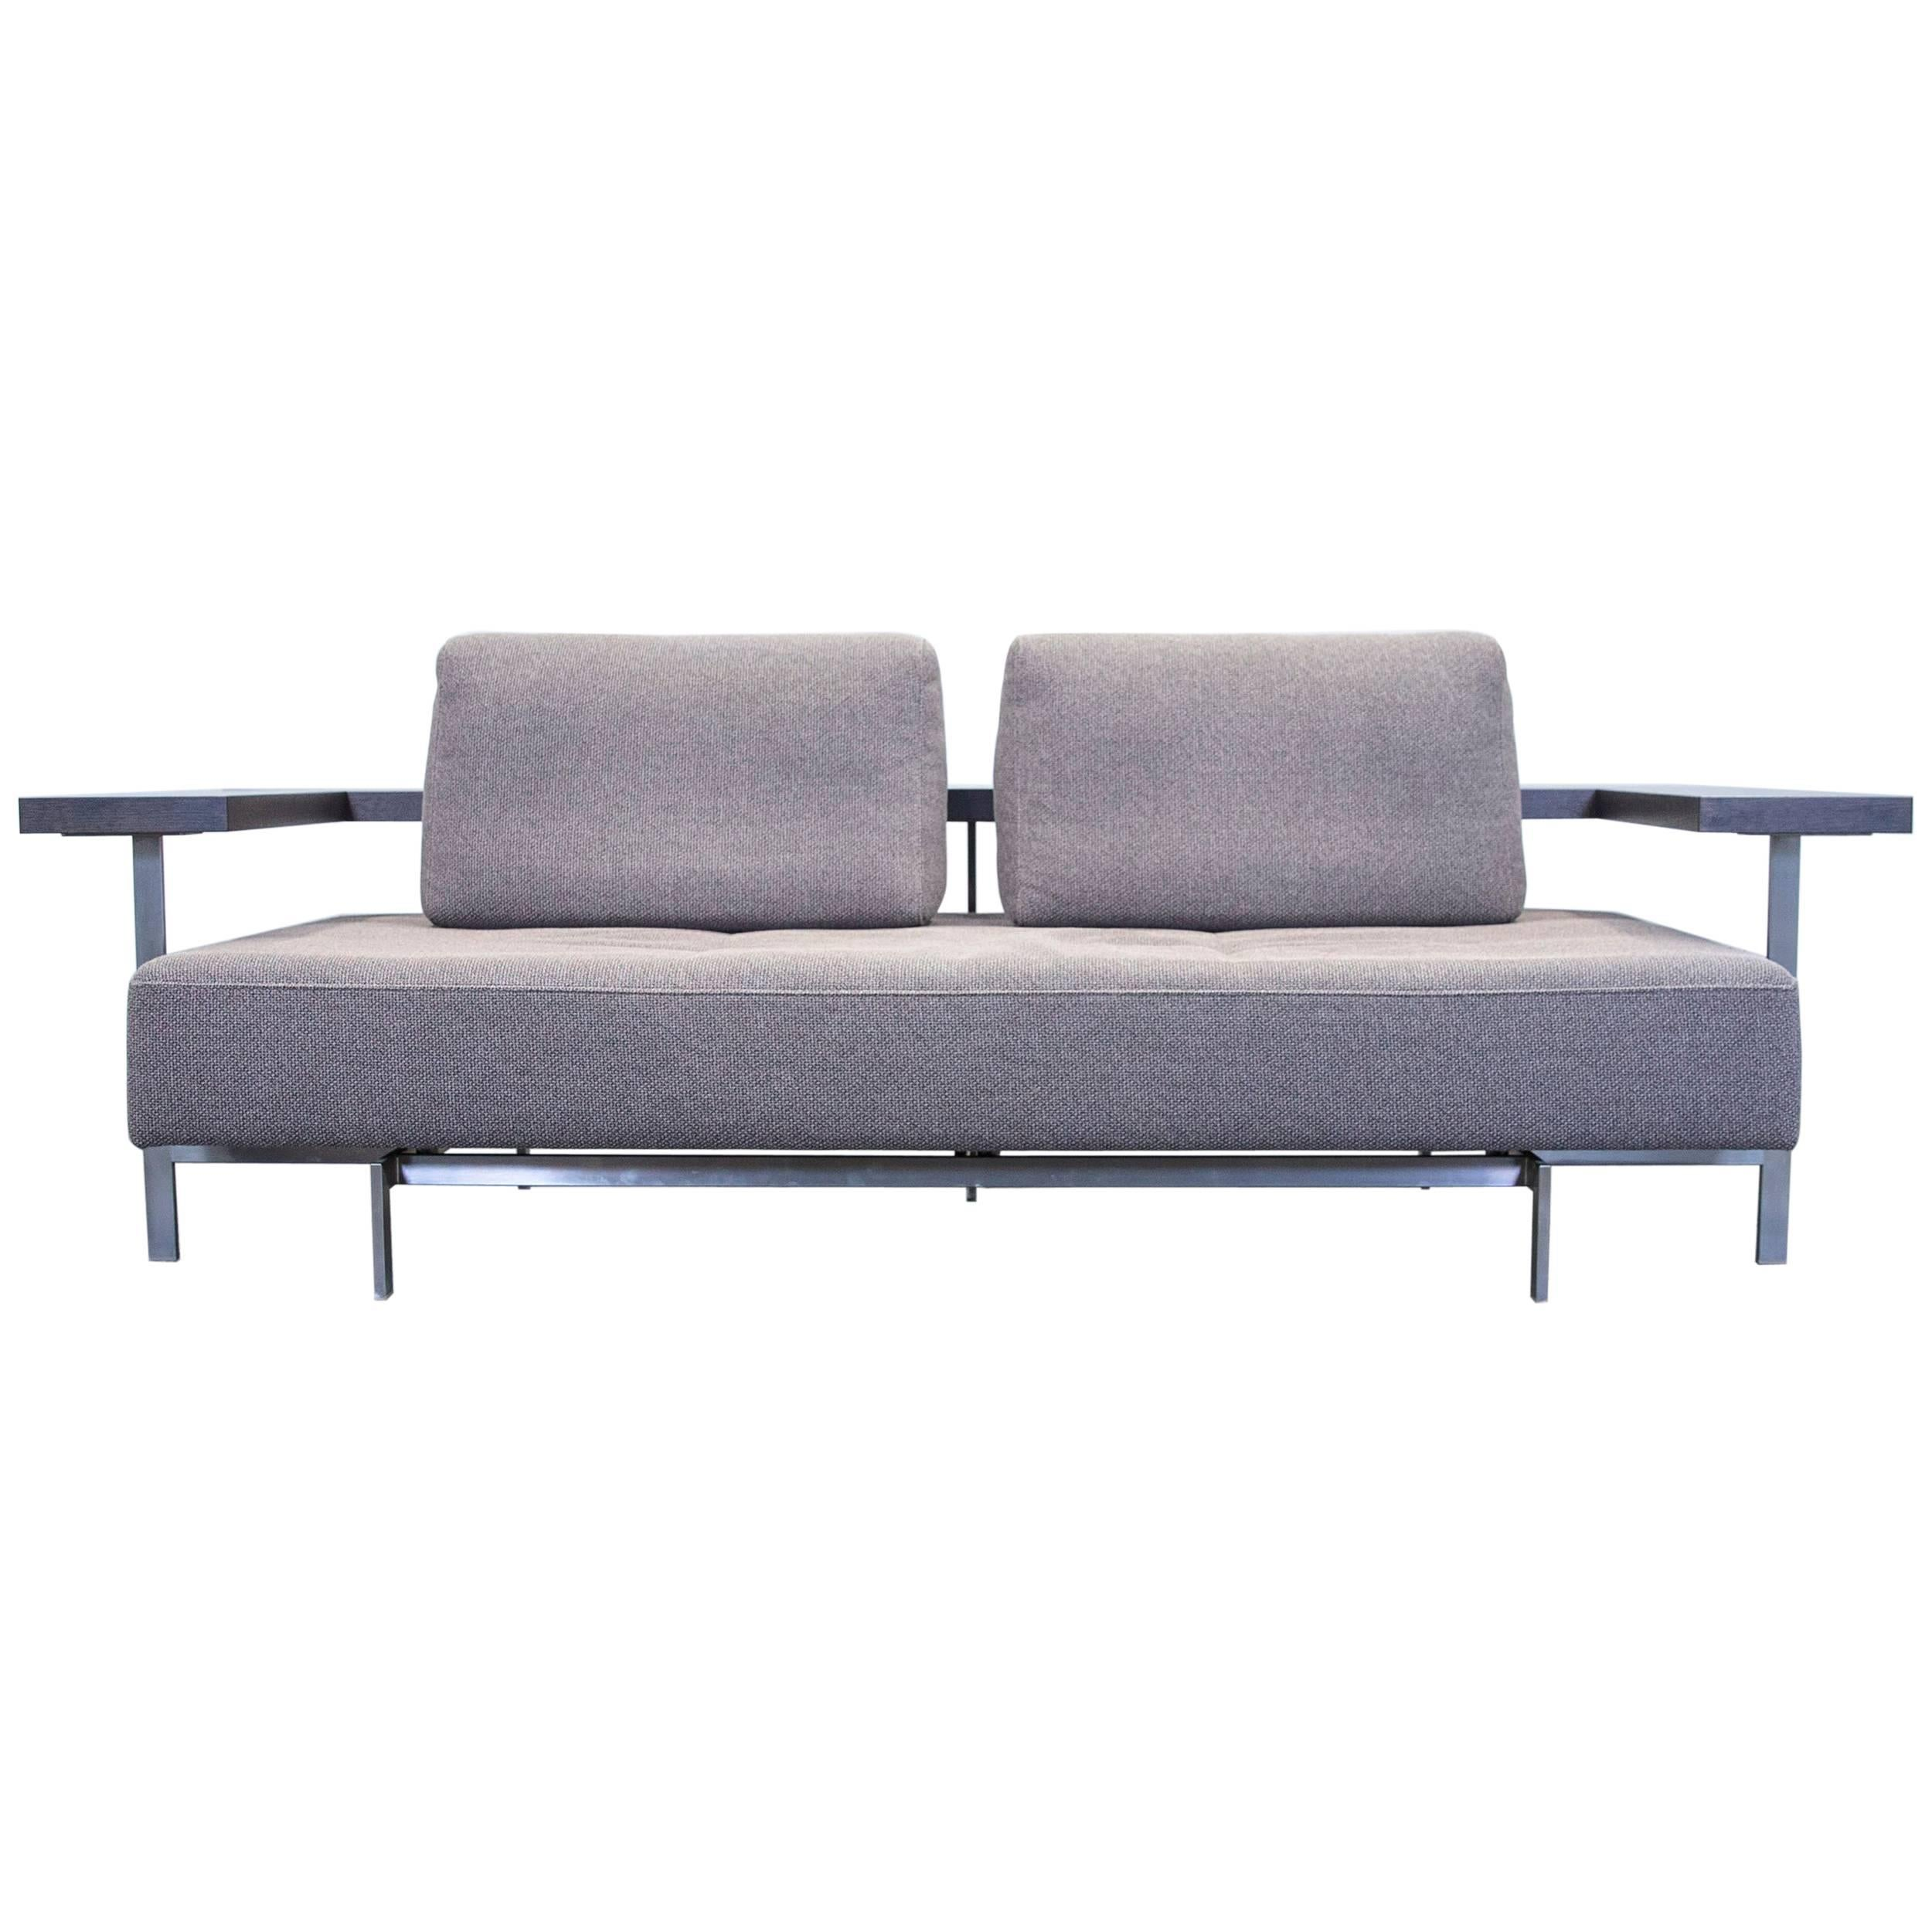 Rolf benz sofa beautiful rolf benz tira form follows for Couch benz